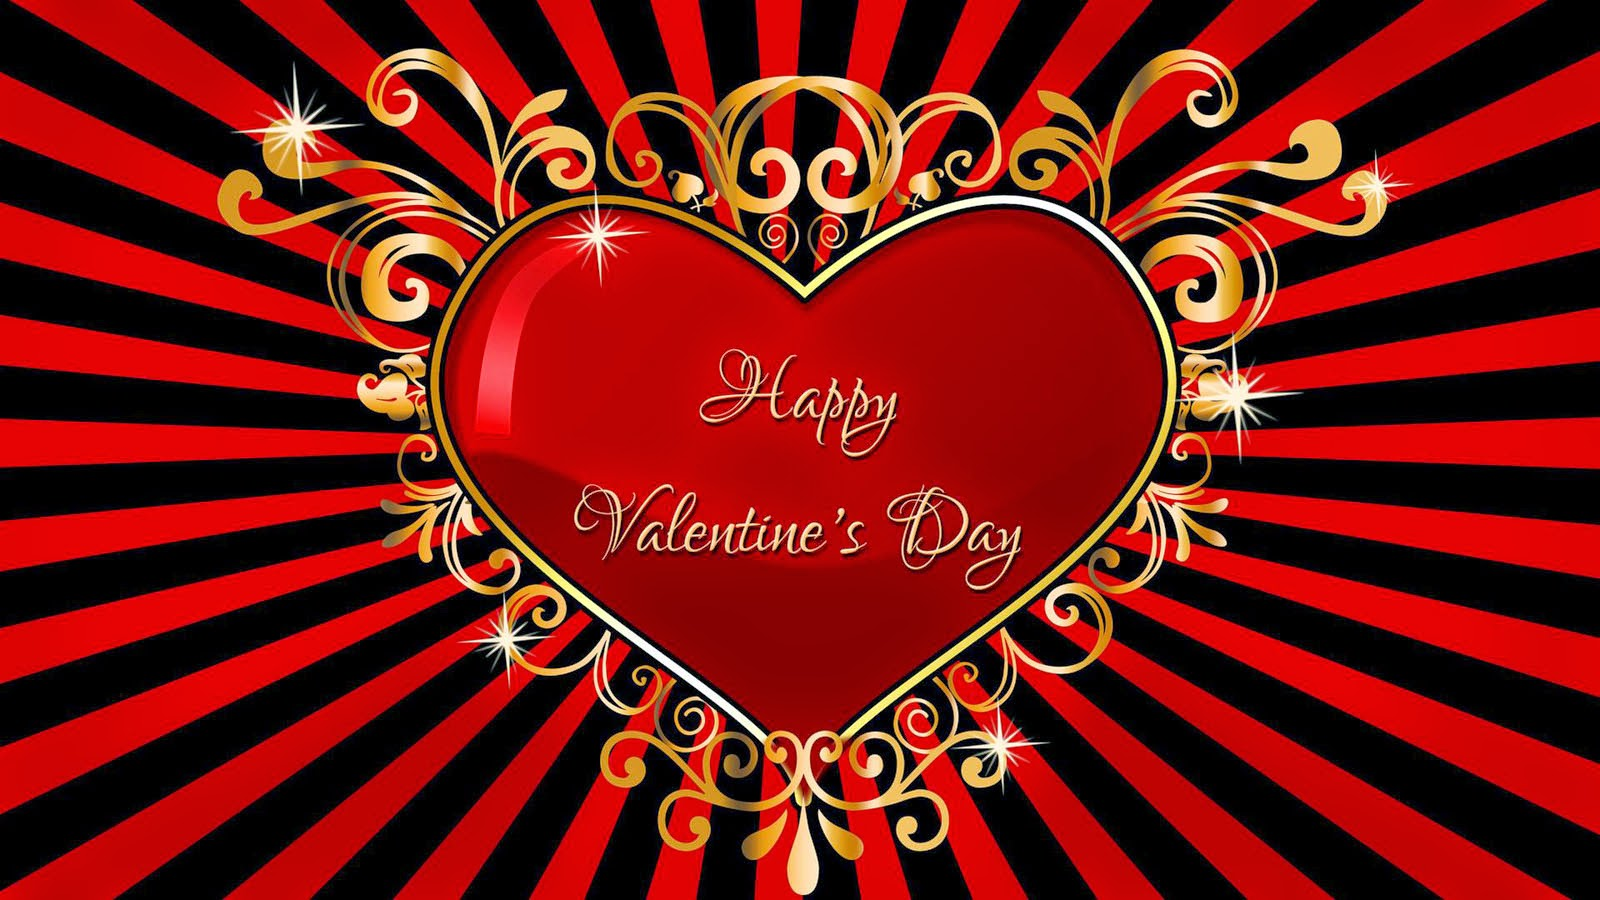 Happy Valentines Day Images for *Facebook*